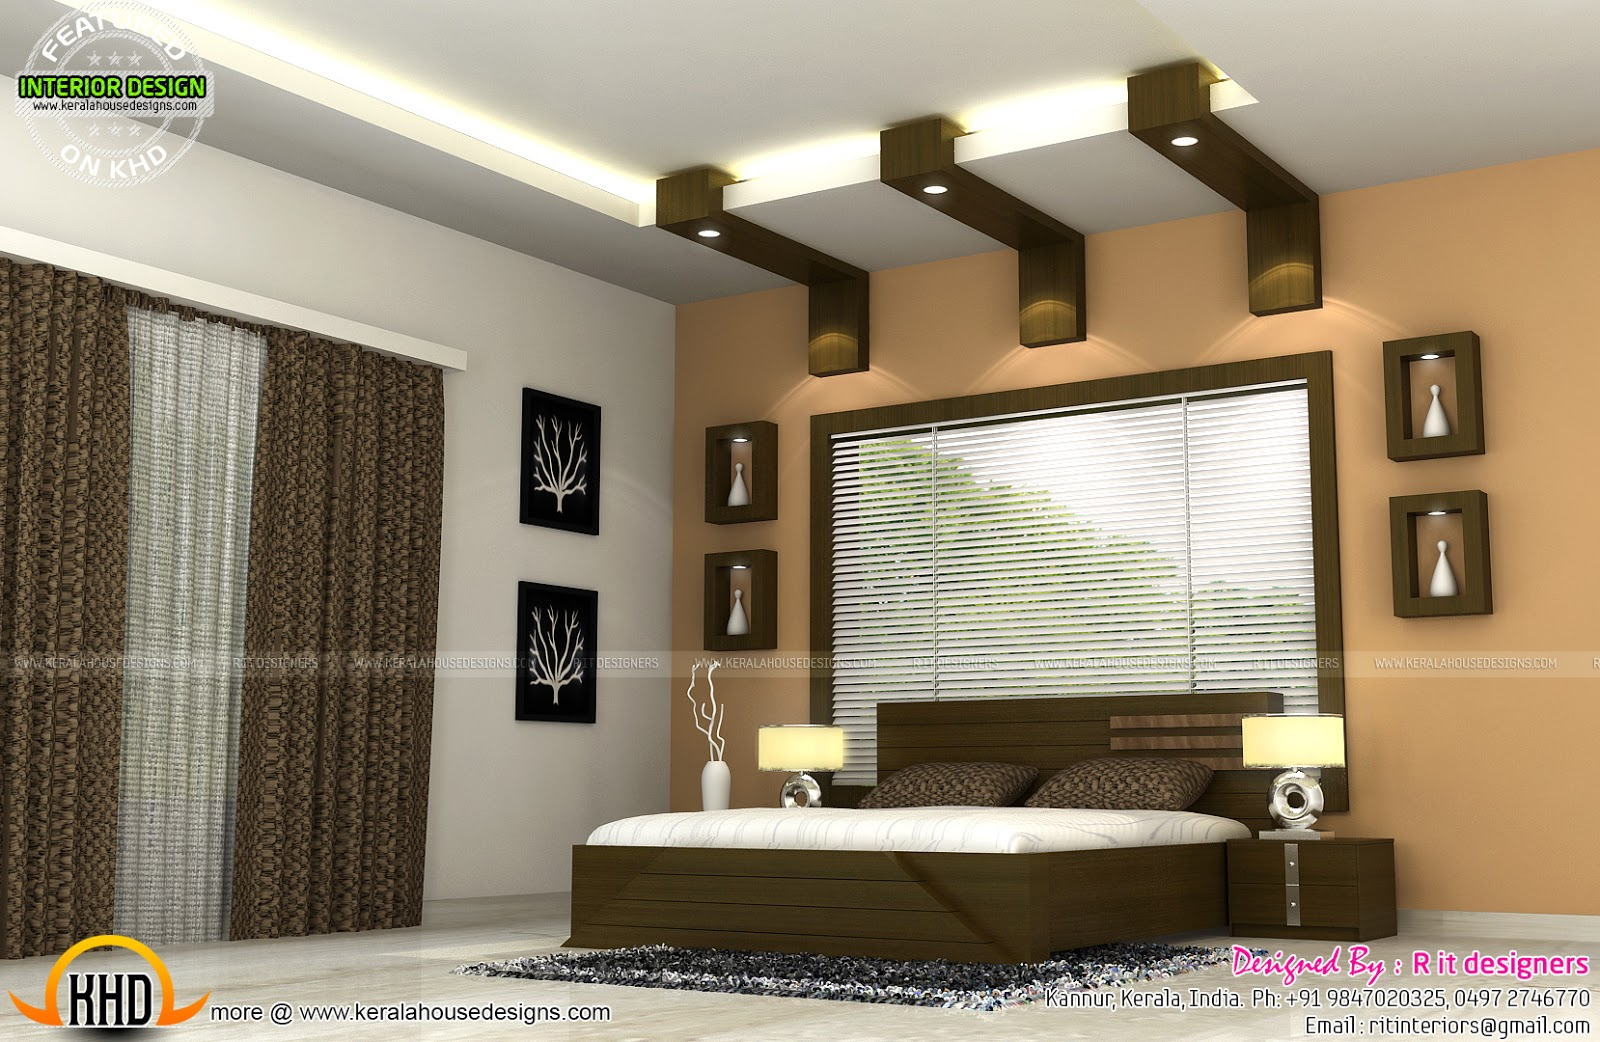 Interiors Of Bedrooms And Kitchen Kerala Home Design